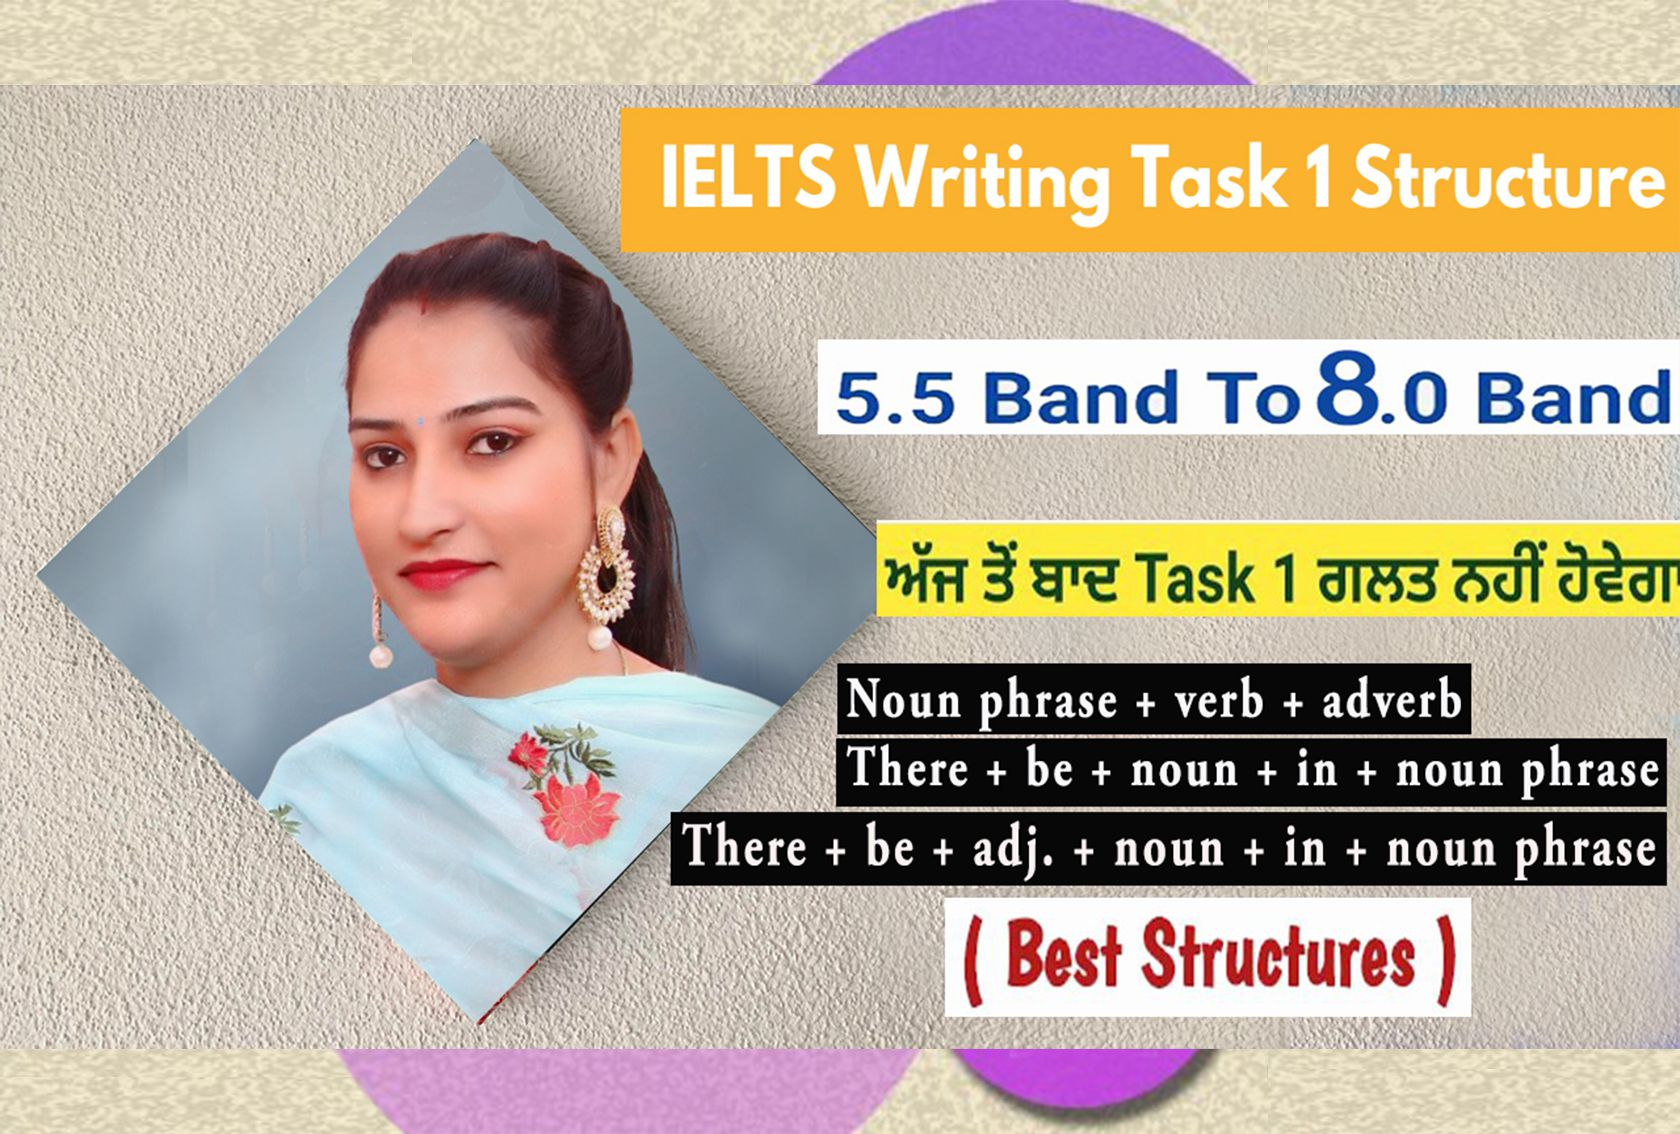 Best structure for ielts writing task 1